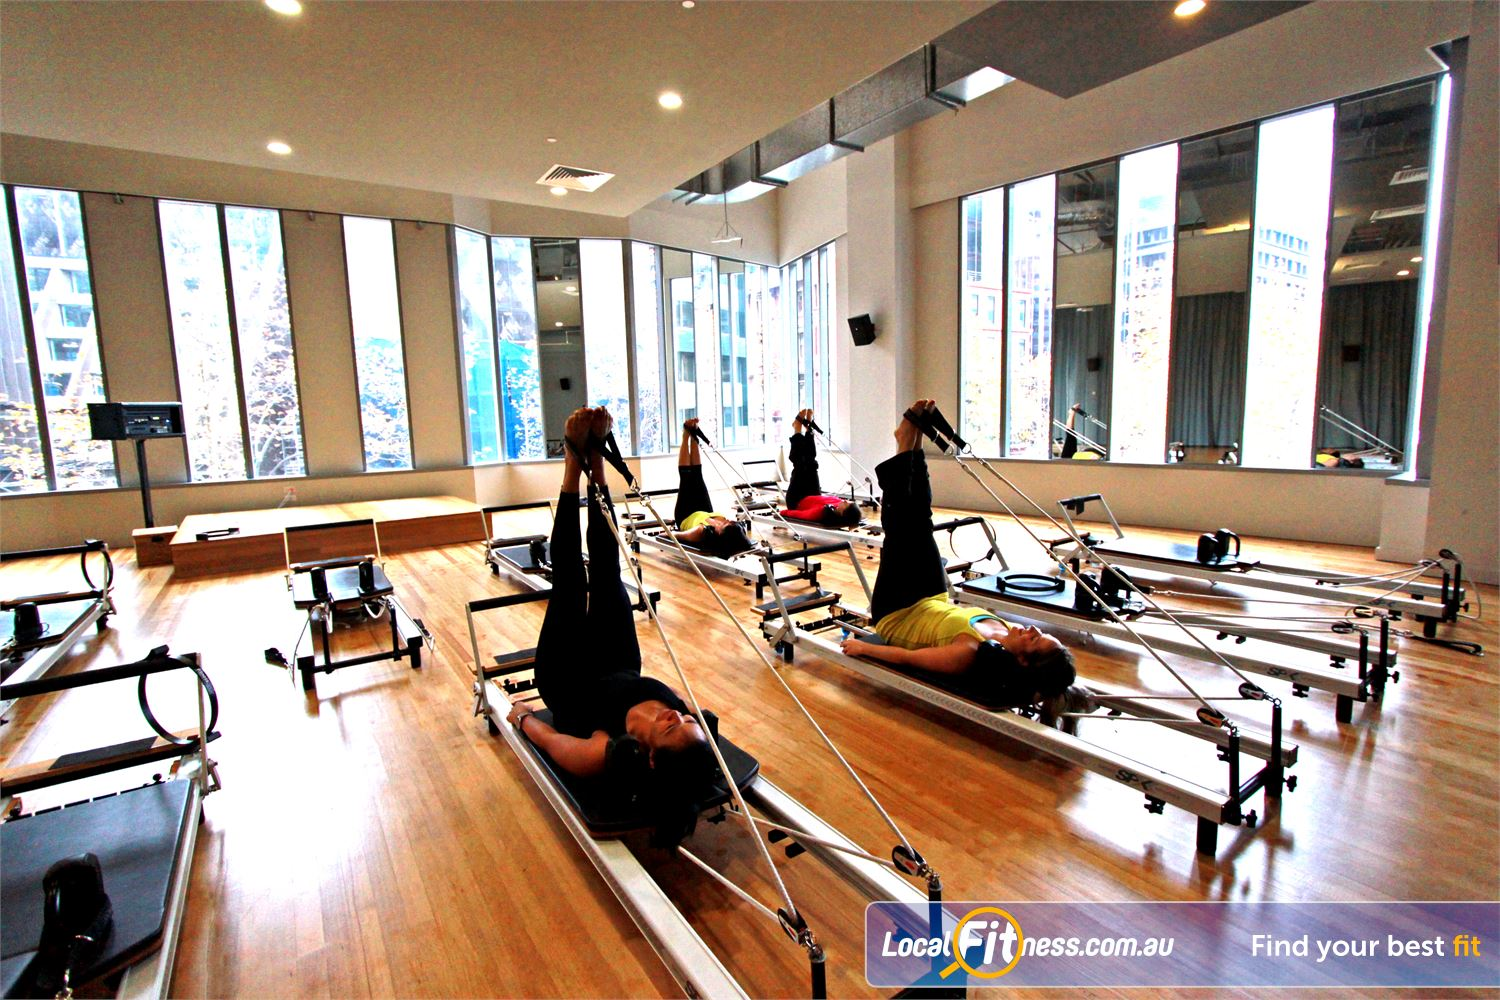 South Pacific Health Clubs Melbourne Led by fully qualified and highly experienced Melbourne Pilates instructors.